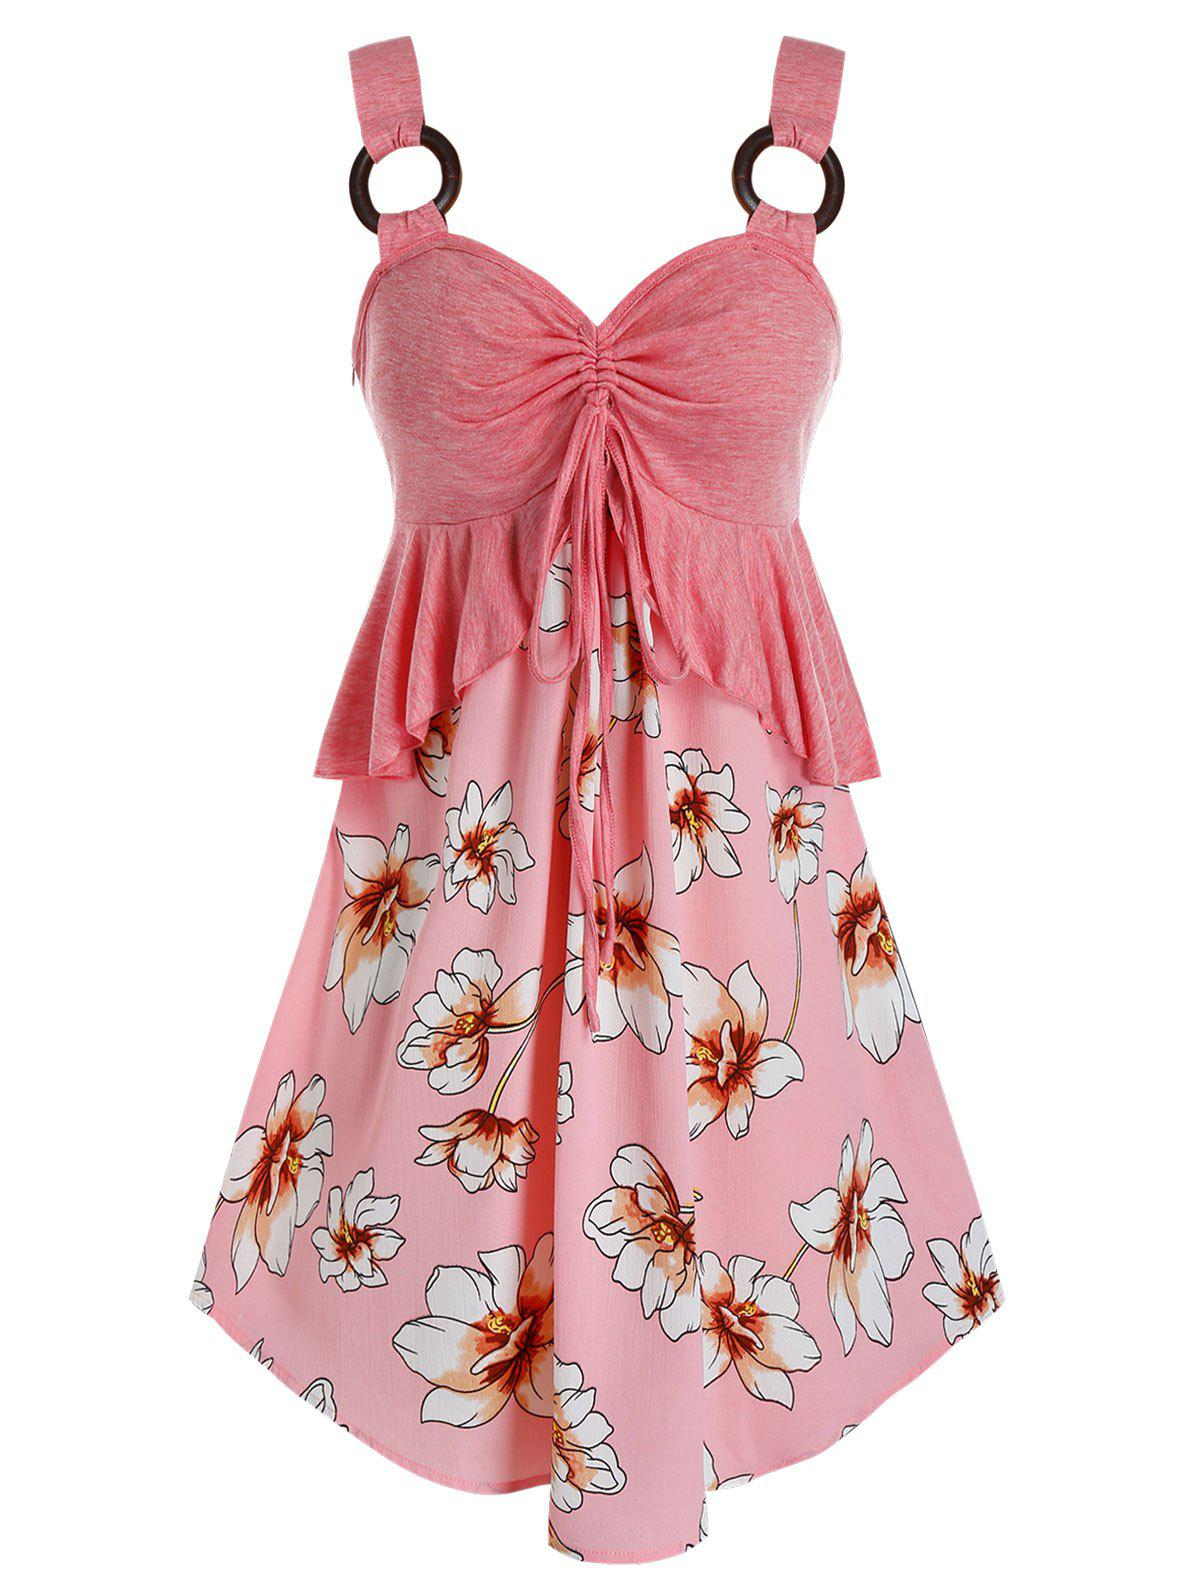 Plus Size Flower Print Cinched Peplum Curved Tunic Tank Top - PINK L